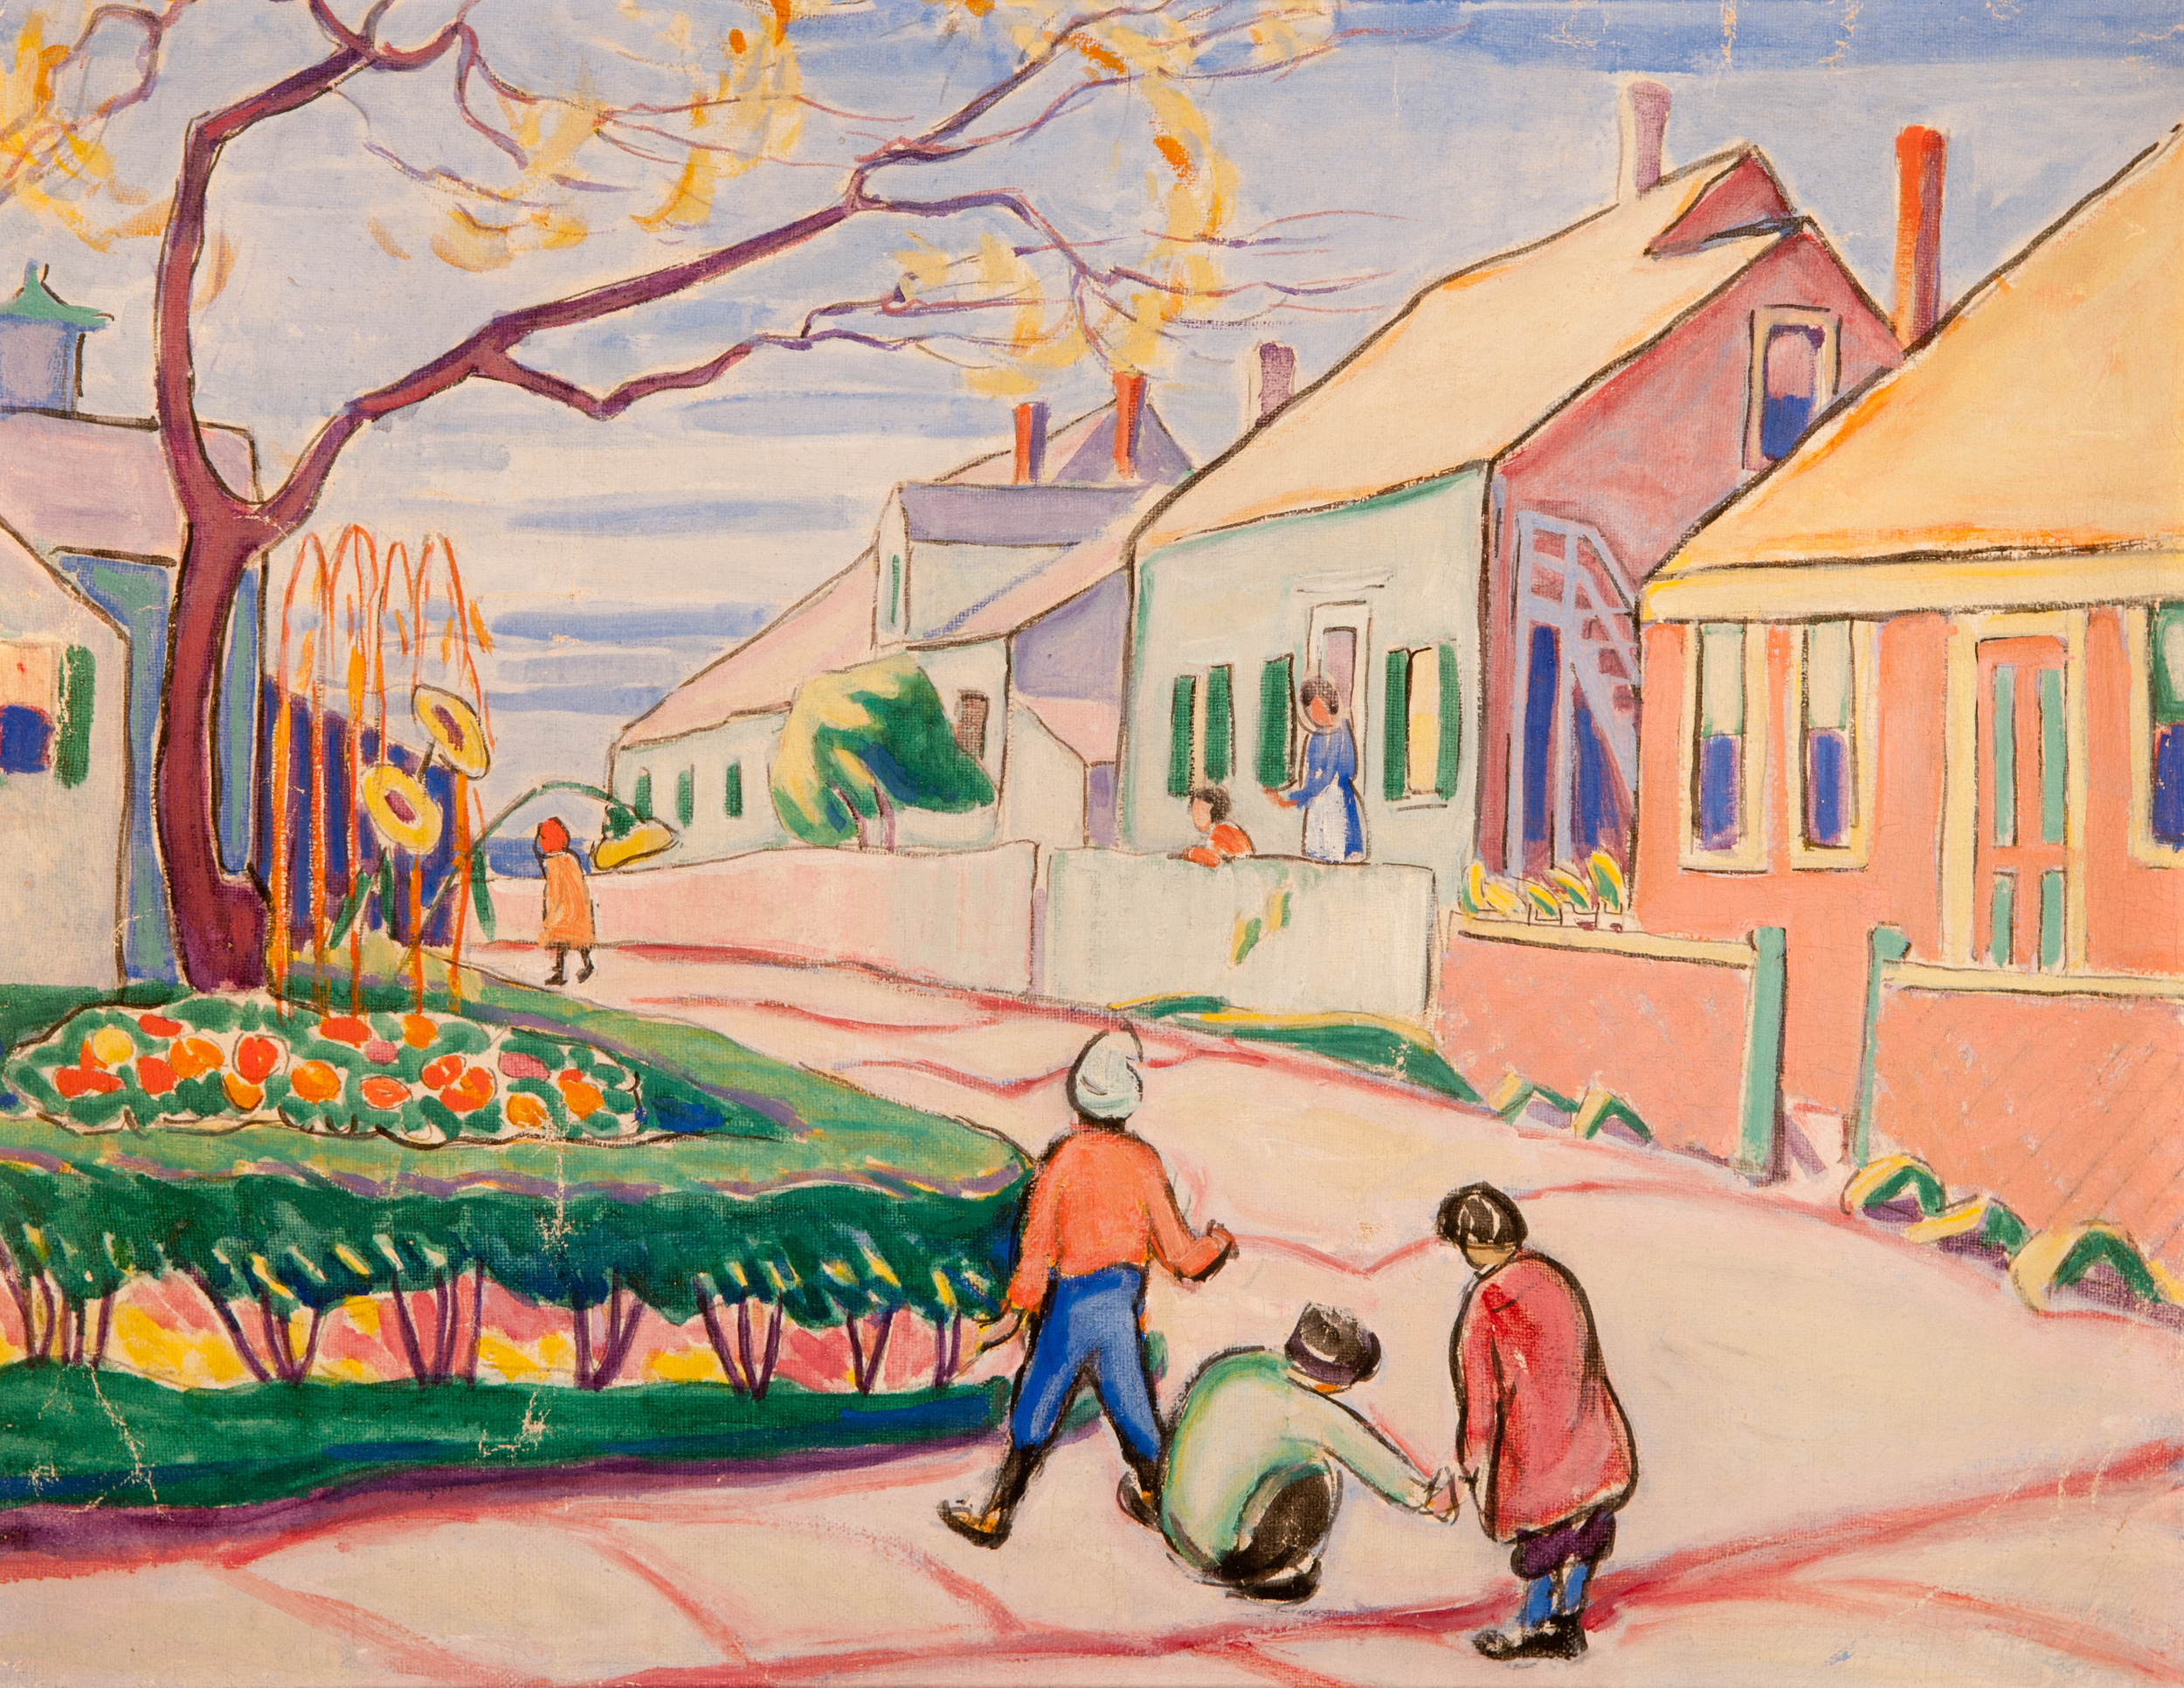 Provincetown Street (Oil Painting) by Edith Lake Wilkinson